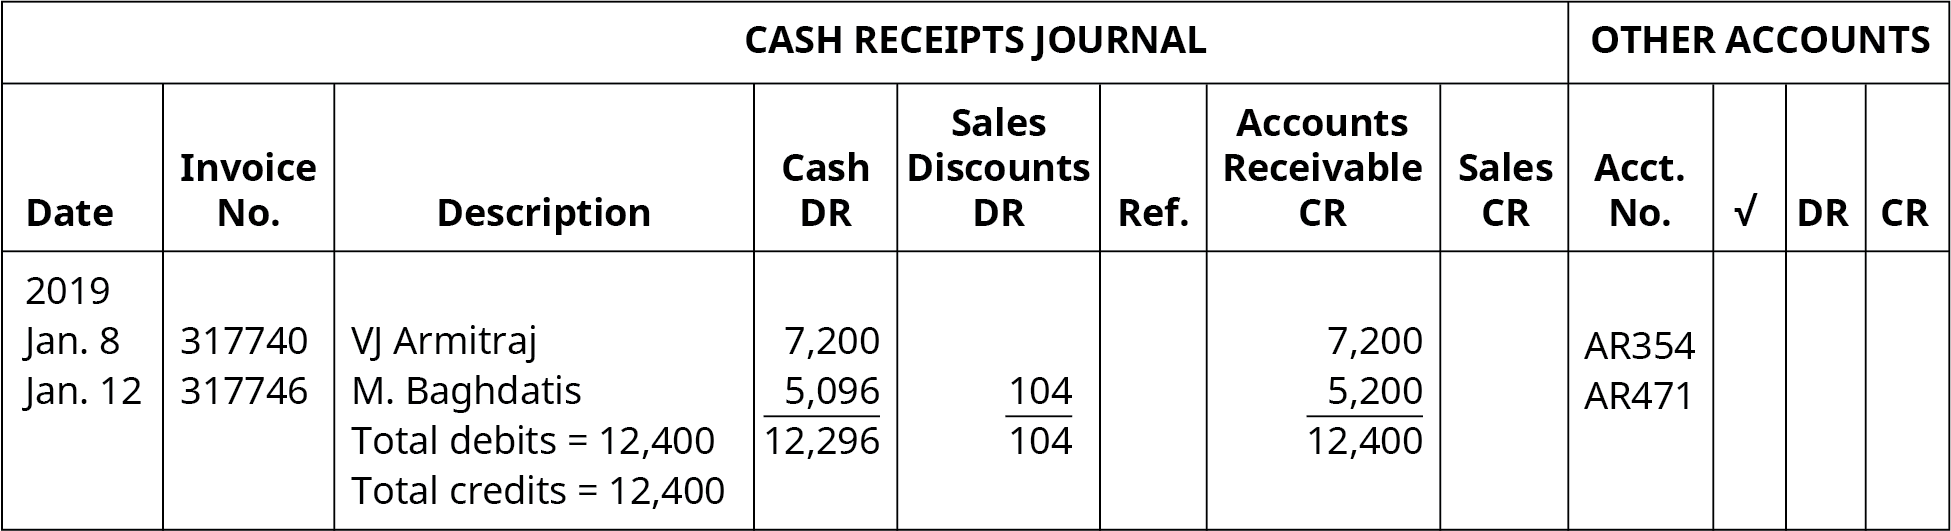 Cash Receipts Journal, Other Accounts. Nine columns, labeled left to right: Date, Invoice Number, Description, Cash DR, Sales Discounts DR, Ref., Accounts Receivable CR, Sales CR, Account Number. Line One: January 8, 2019; 317740; VJ Armitraj; 7,200; Blank; Blank; 7,200; Blank; AR354. Line Two: January 12, 2019; 317746; M. Baghdatis; 5,096; 104; Blank; 5,200; Blank; AR471. Line Three: Blank, Blank, Total debits = 12,400; 12,296; 104; Blank; 12,400; Blank; Blank. Line Four: Blank; Blank; Total credits = 12,400; Blank; Blank; Blank; Blank; Blank; Blank.